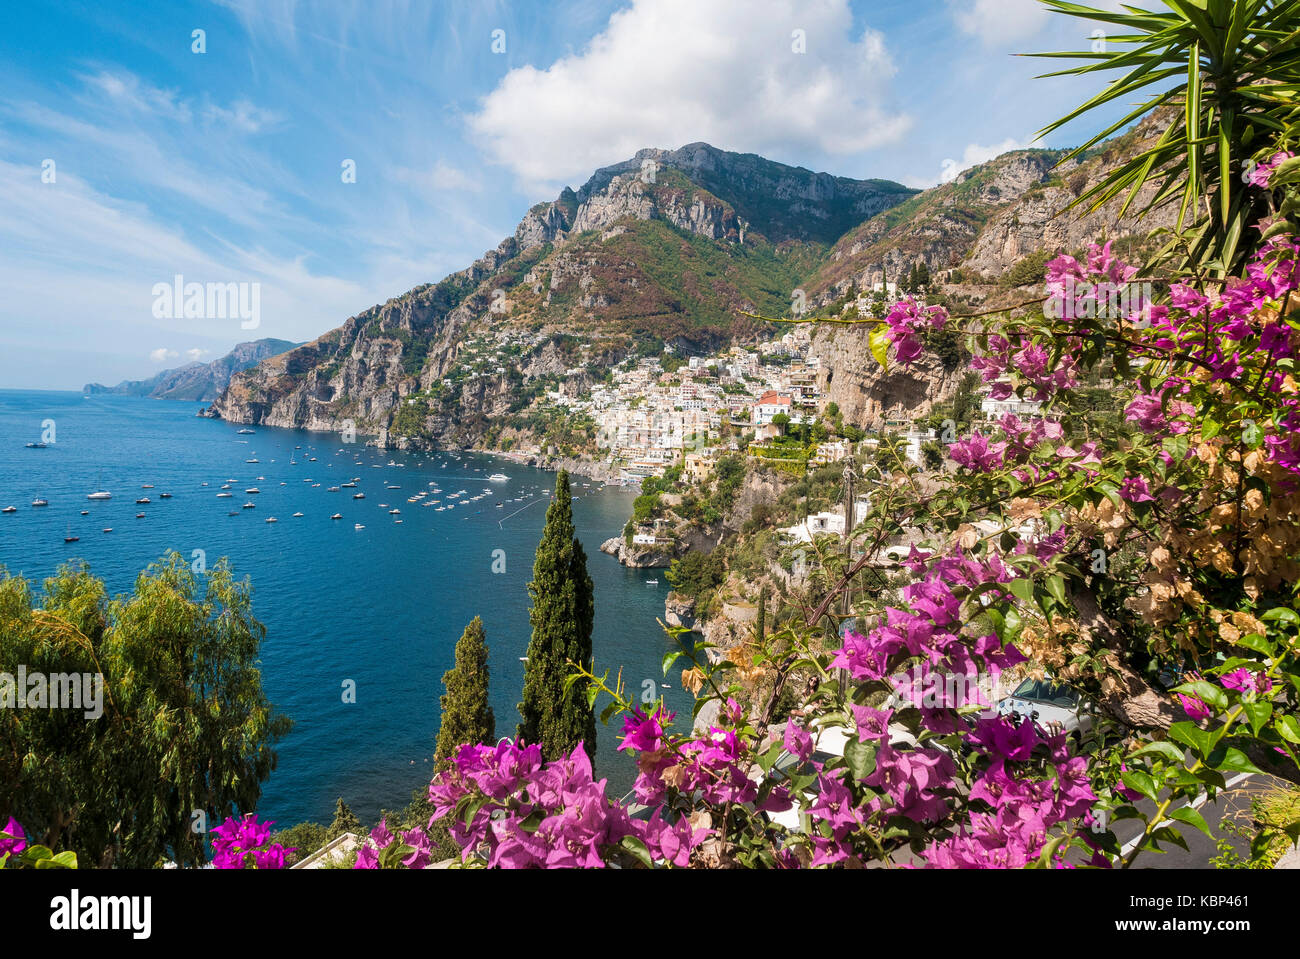 A scenic view of the  town of Positano on the Amalfi coast - Stock Image